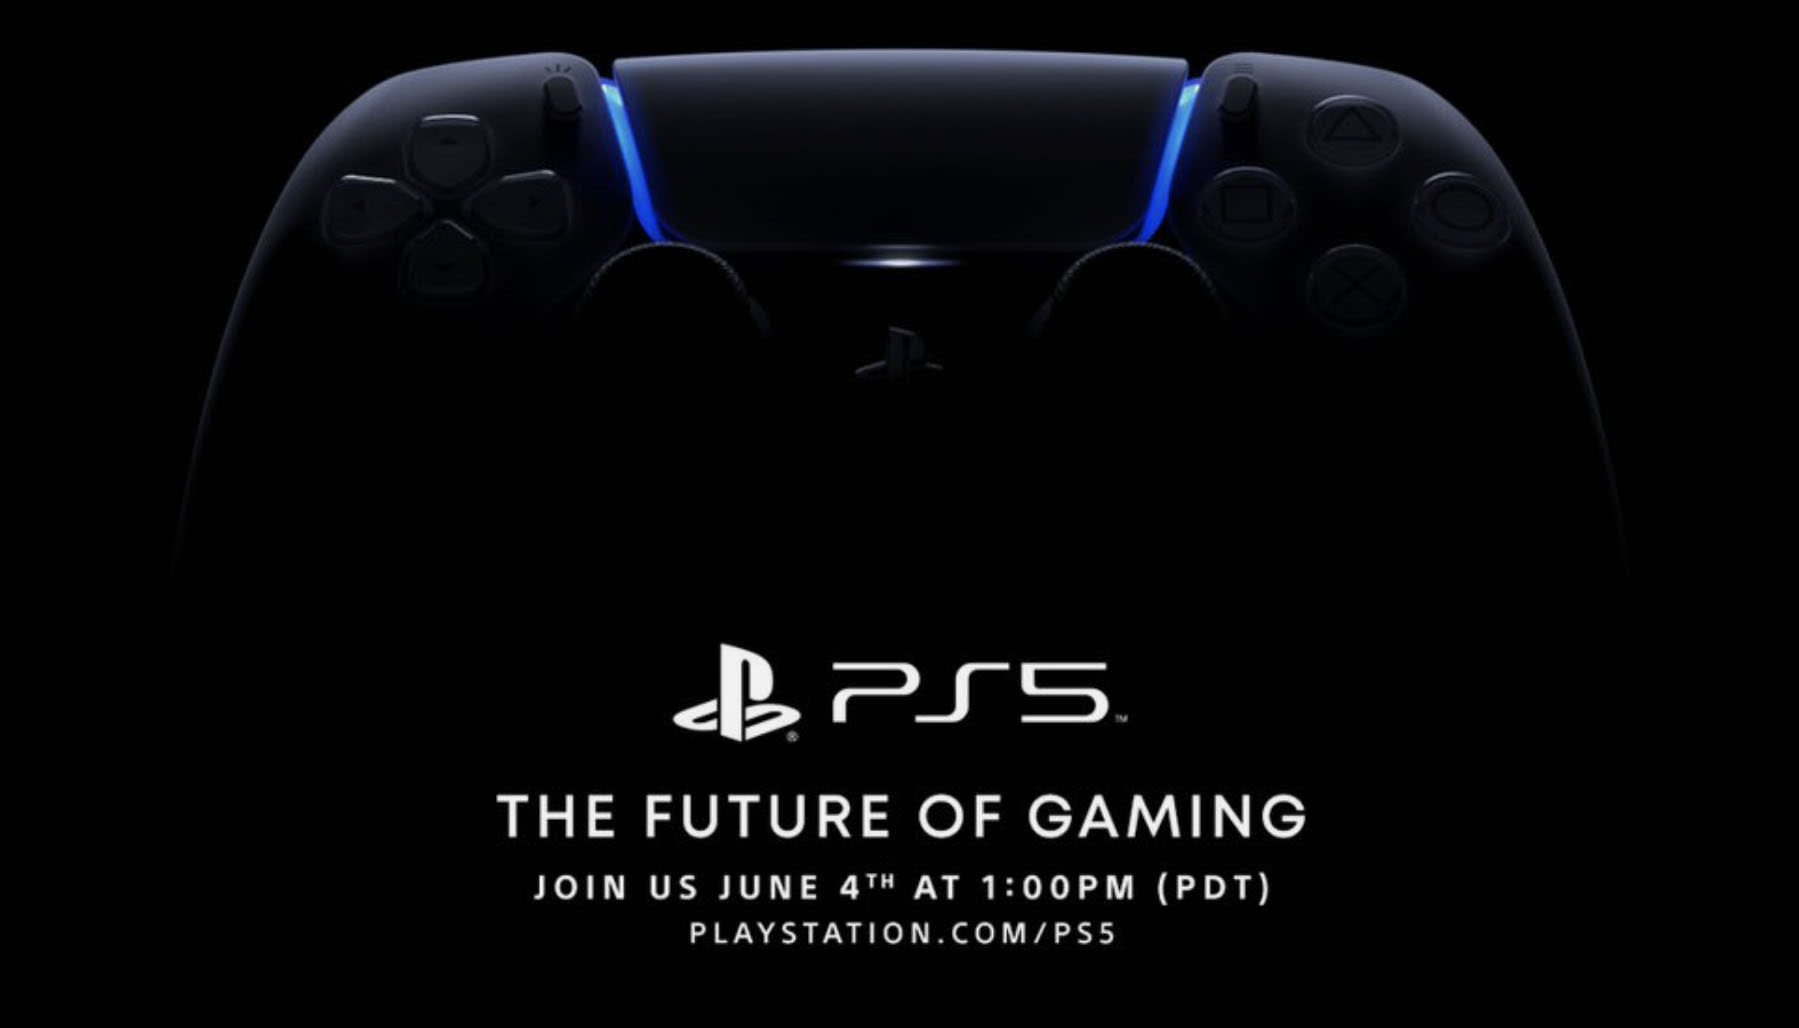 Sony postpones PlayStation 5 event, in order for 'more important voices to be heard' - Yahoo Finance Australia